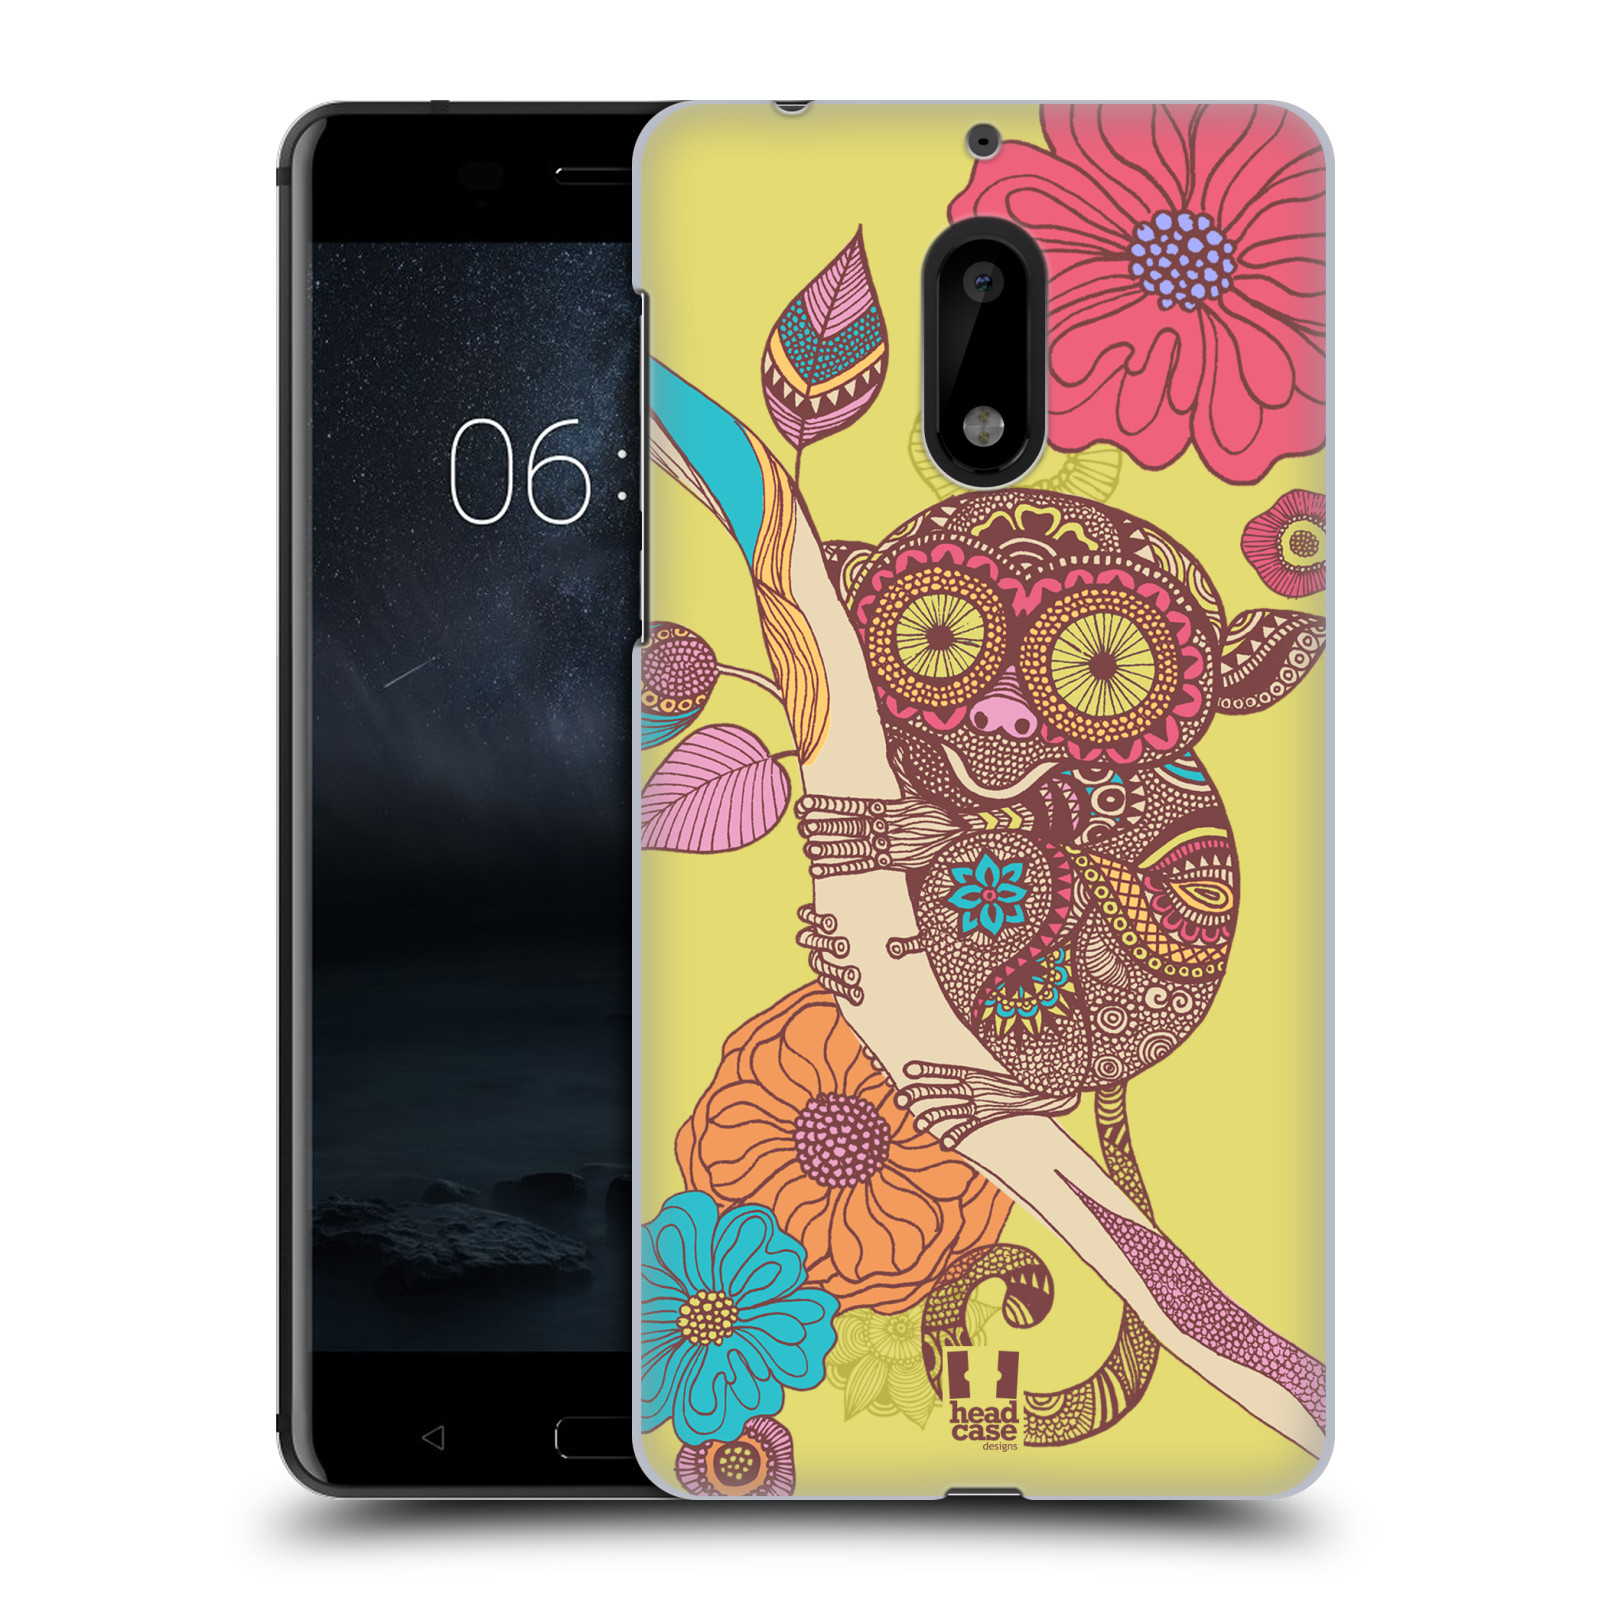 HEAD-CASE-DESIGNS-FANCIFUL-INTRICACIES-HARD-BACK-CASE-FOR-NOKIA-6